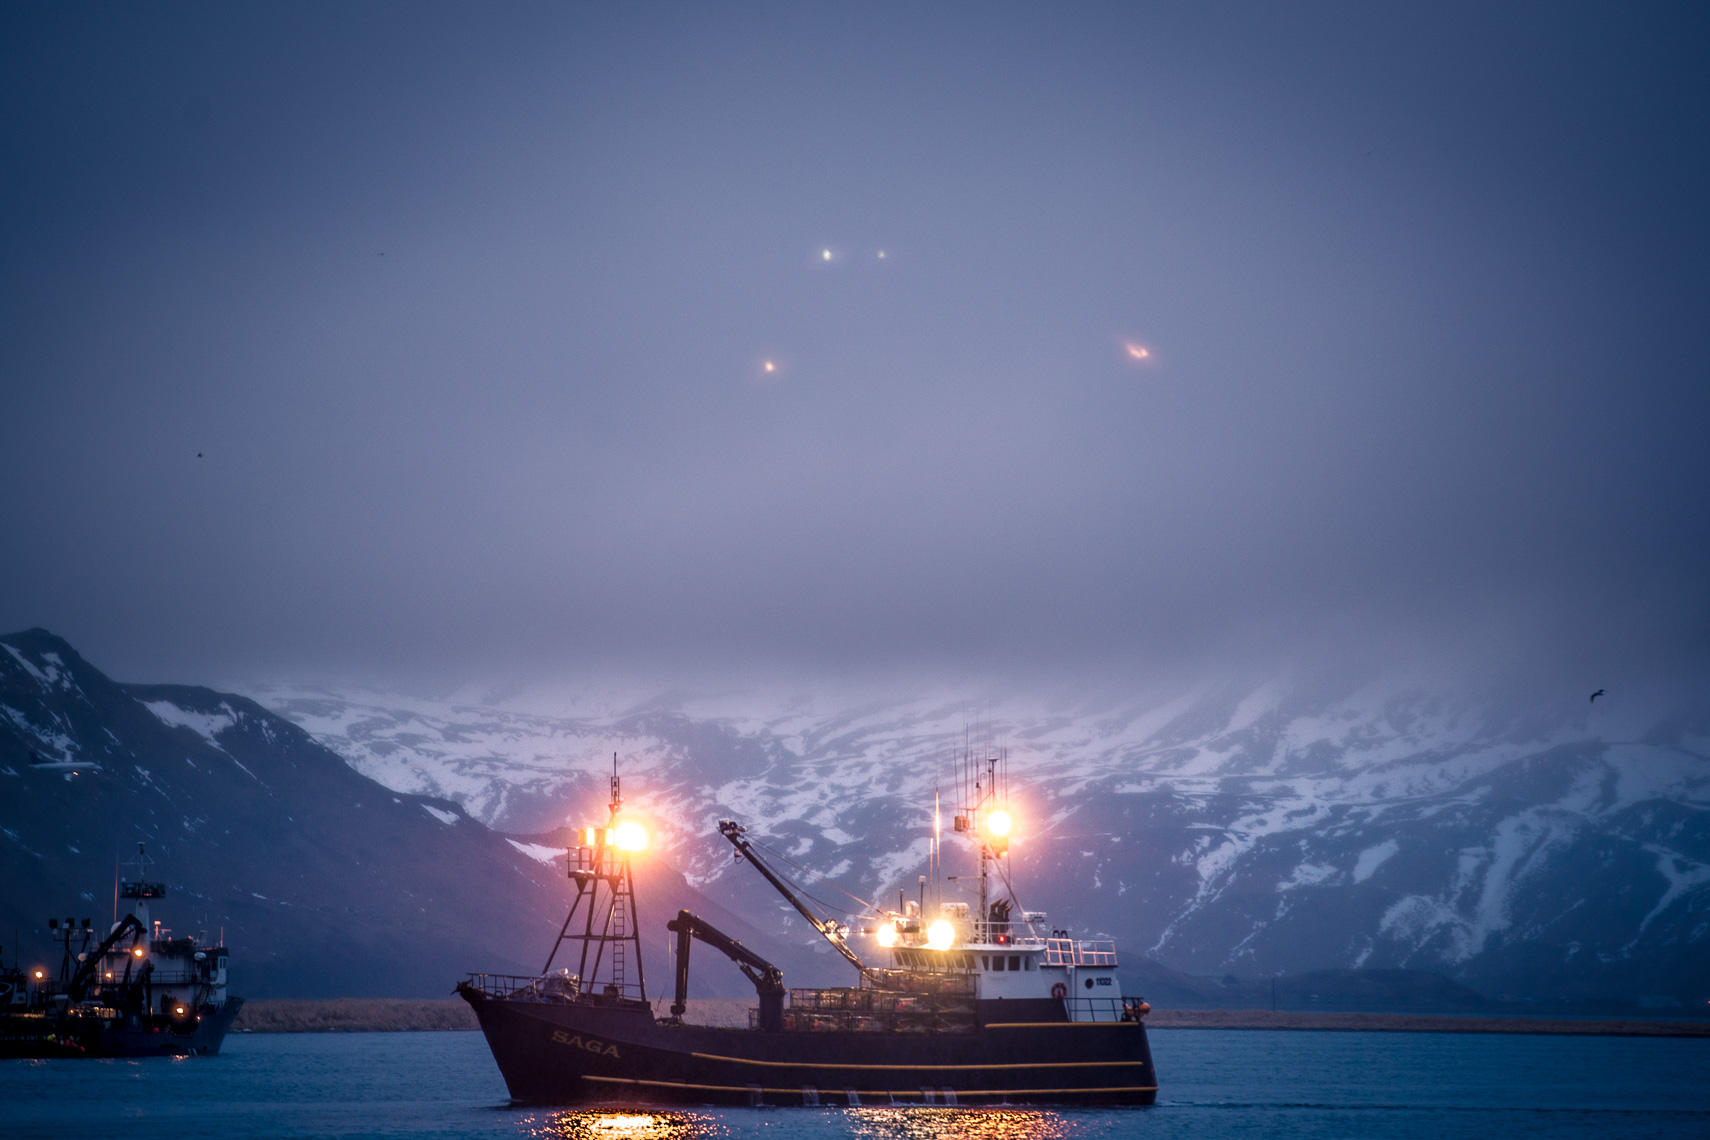 Deadliest_Catch-7851